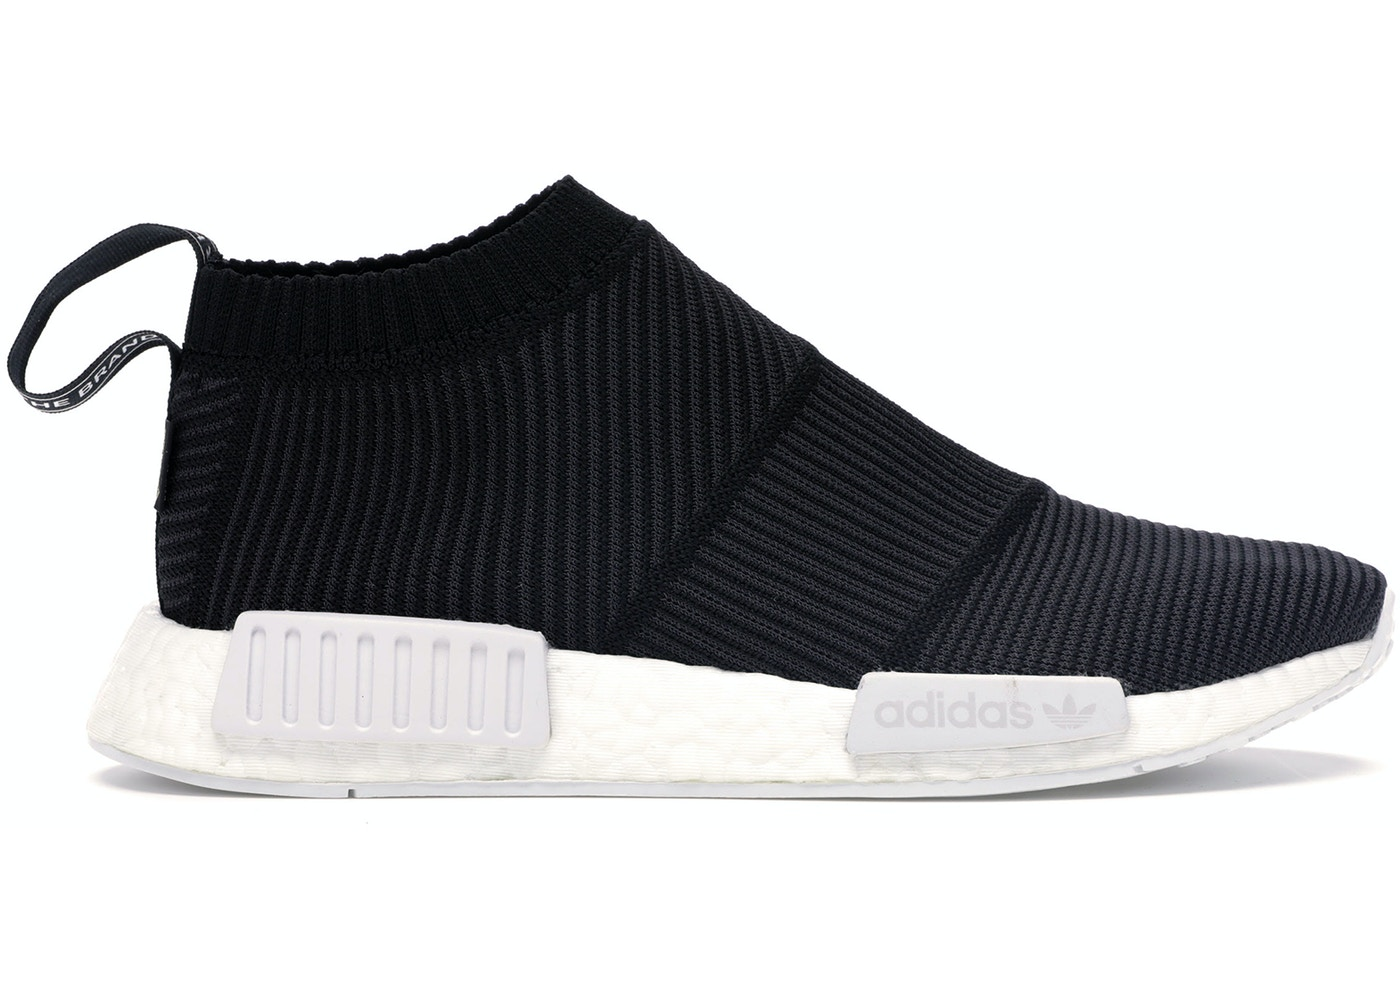 b3c638a184046 adidas NMD CS1 Gore-tex Black - BY9405